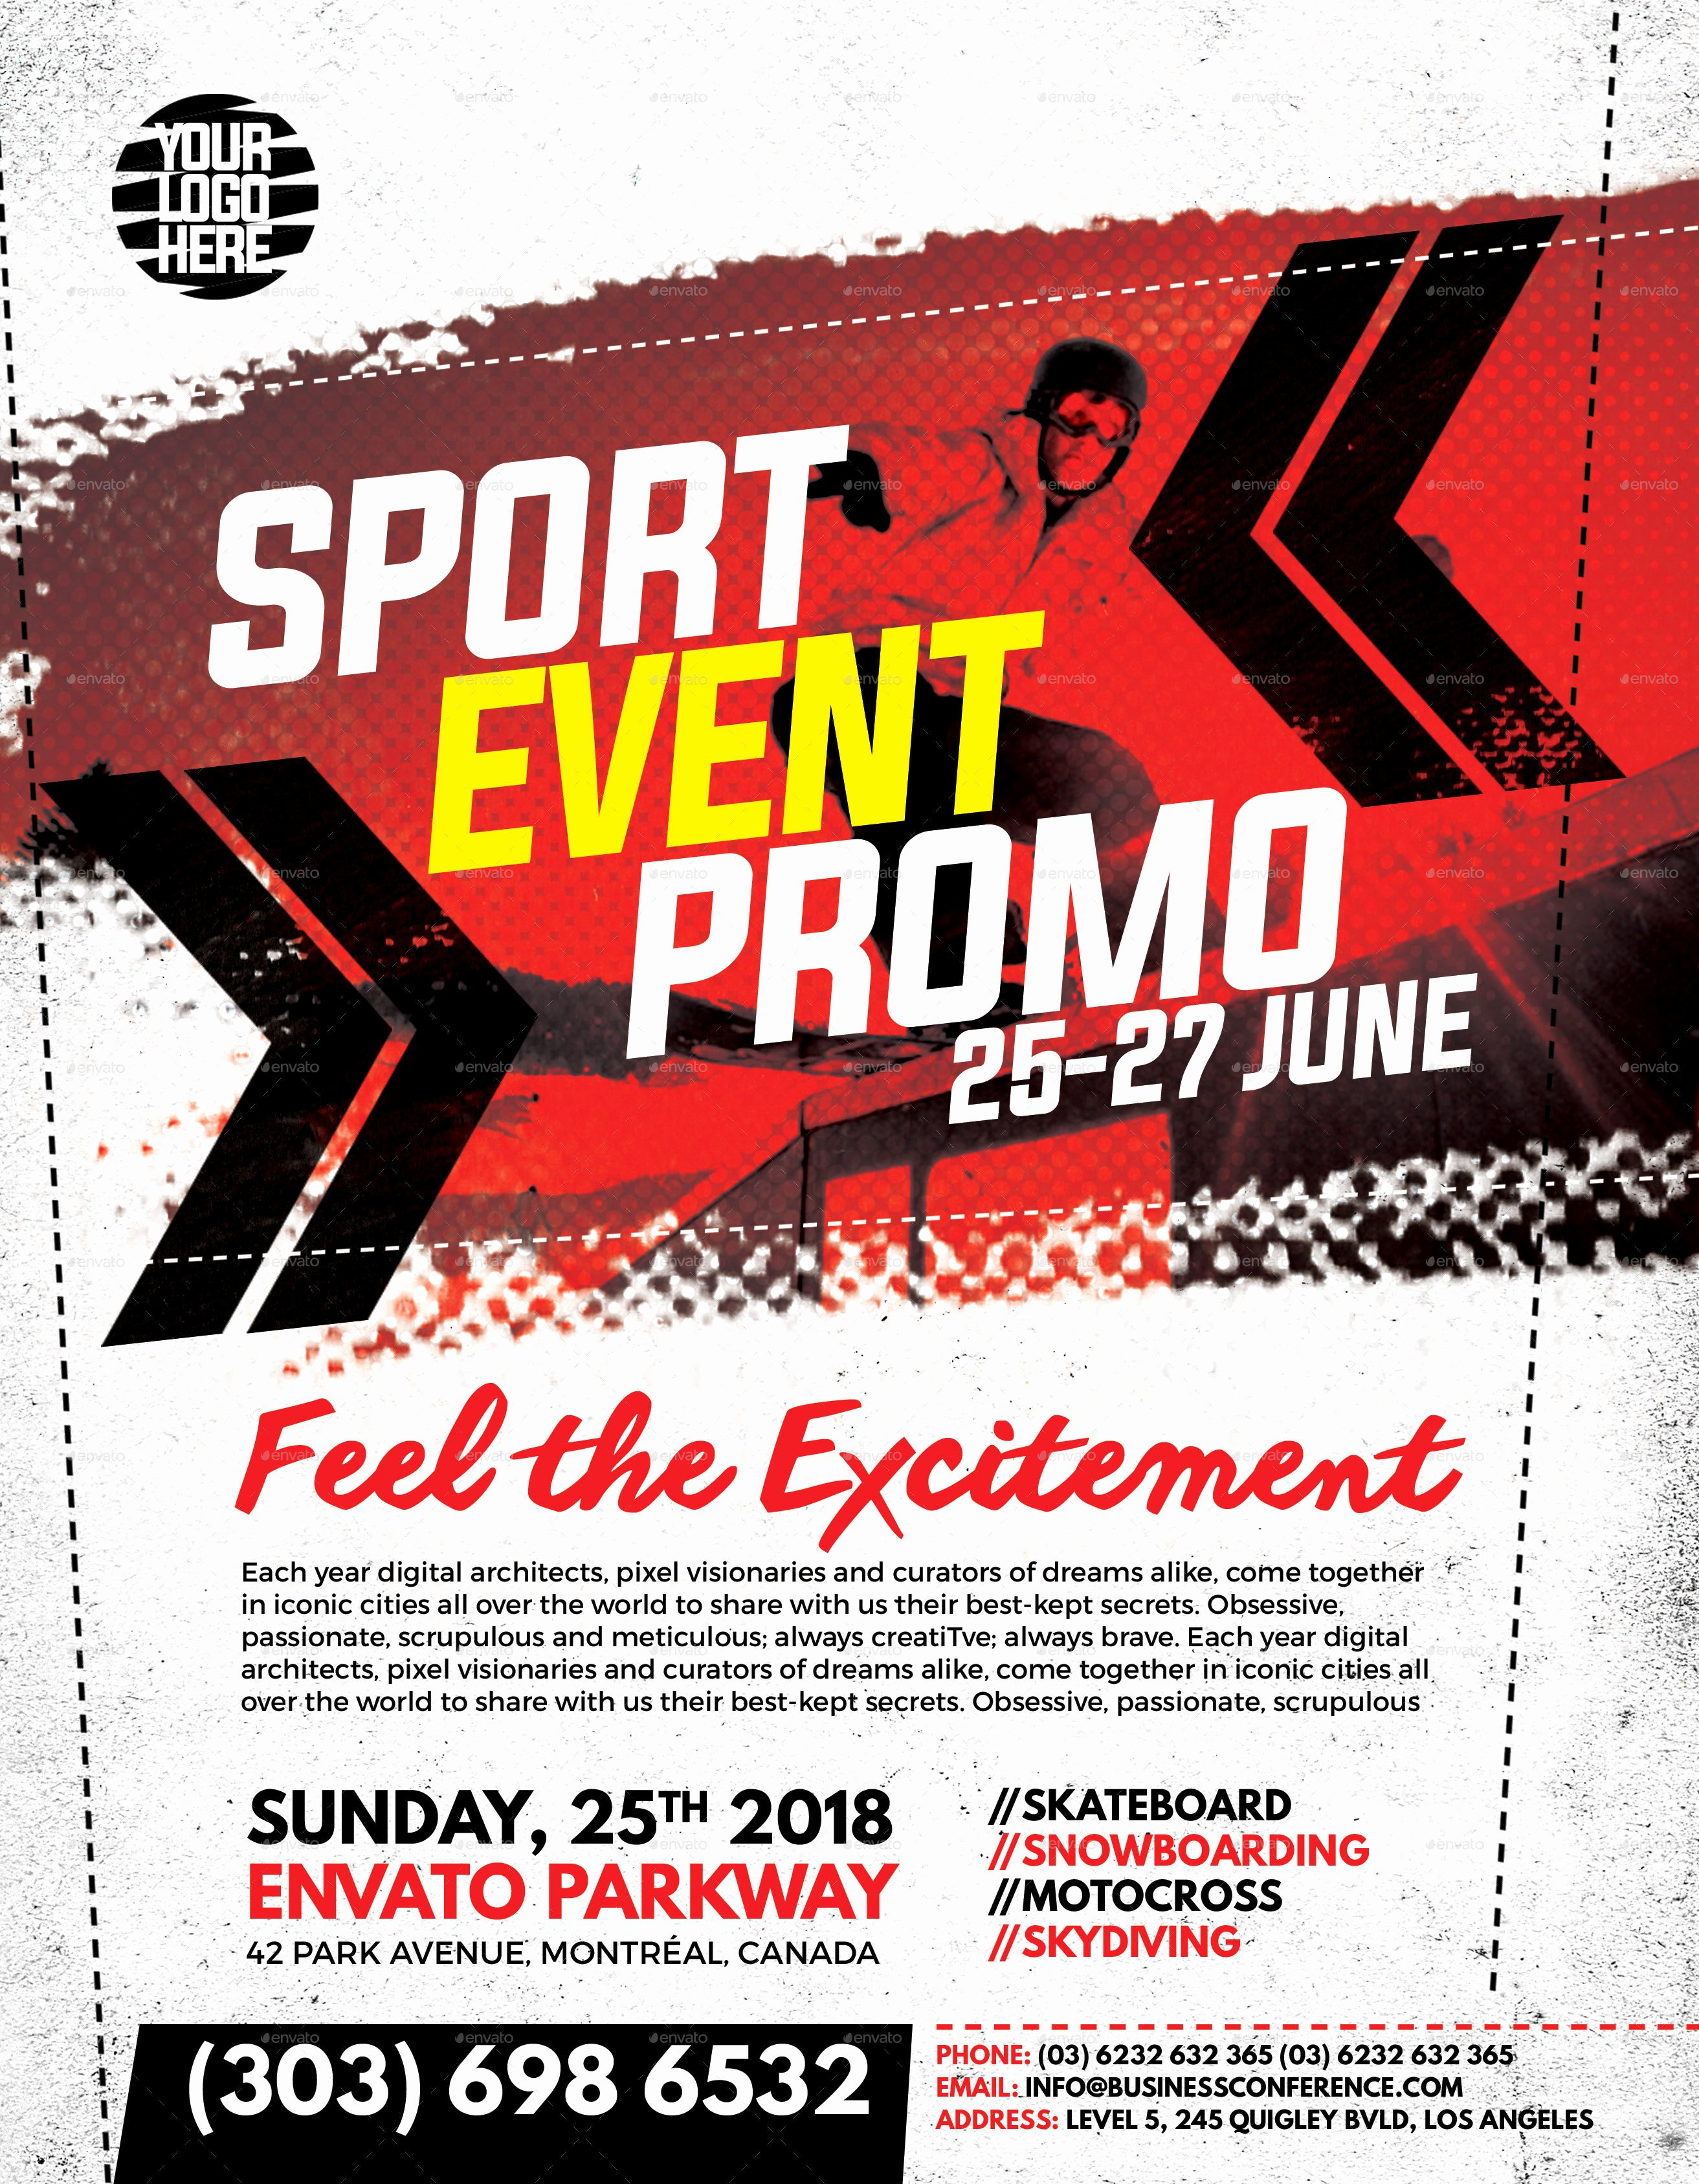 Sports Flyer Template Free Luxury Sport event Promo Flyer by Inddesigner